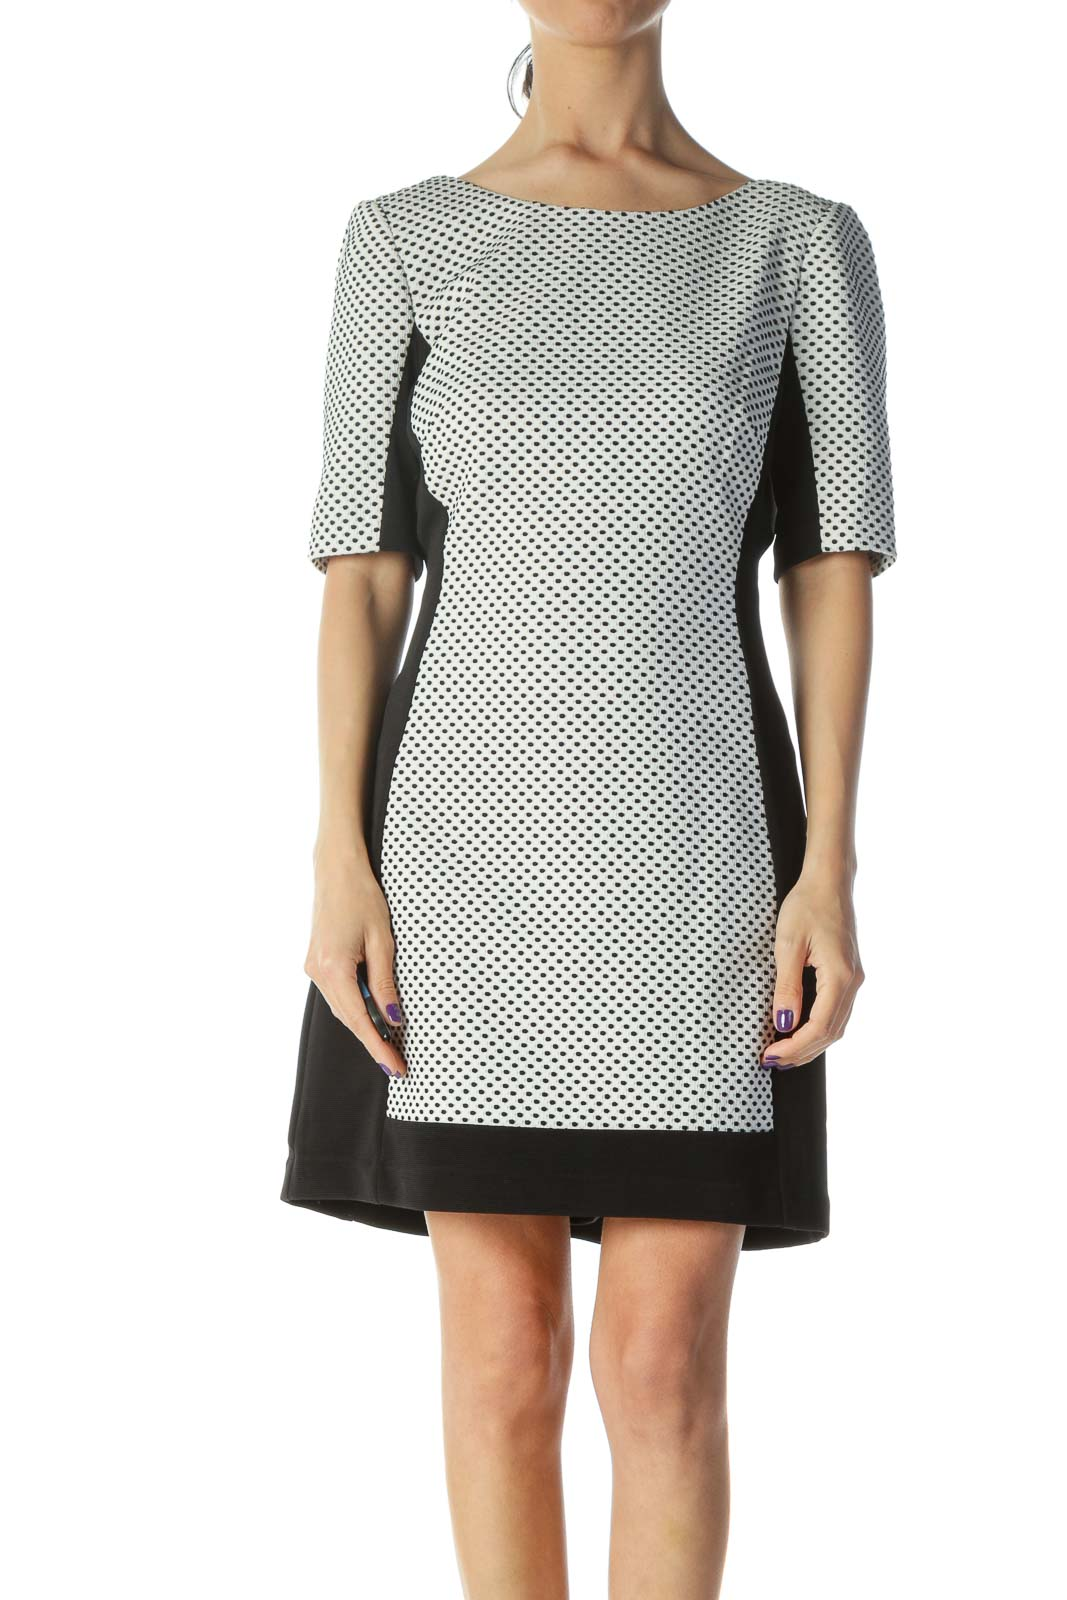 Black Cream Printed Sheath Dress